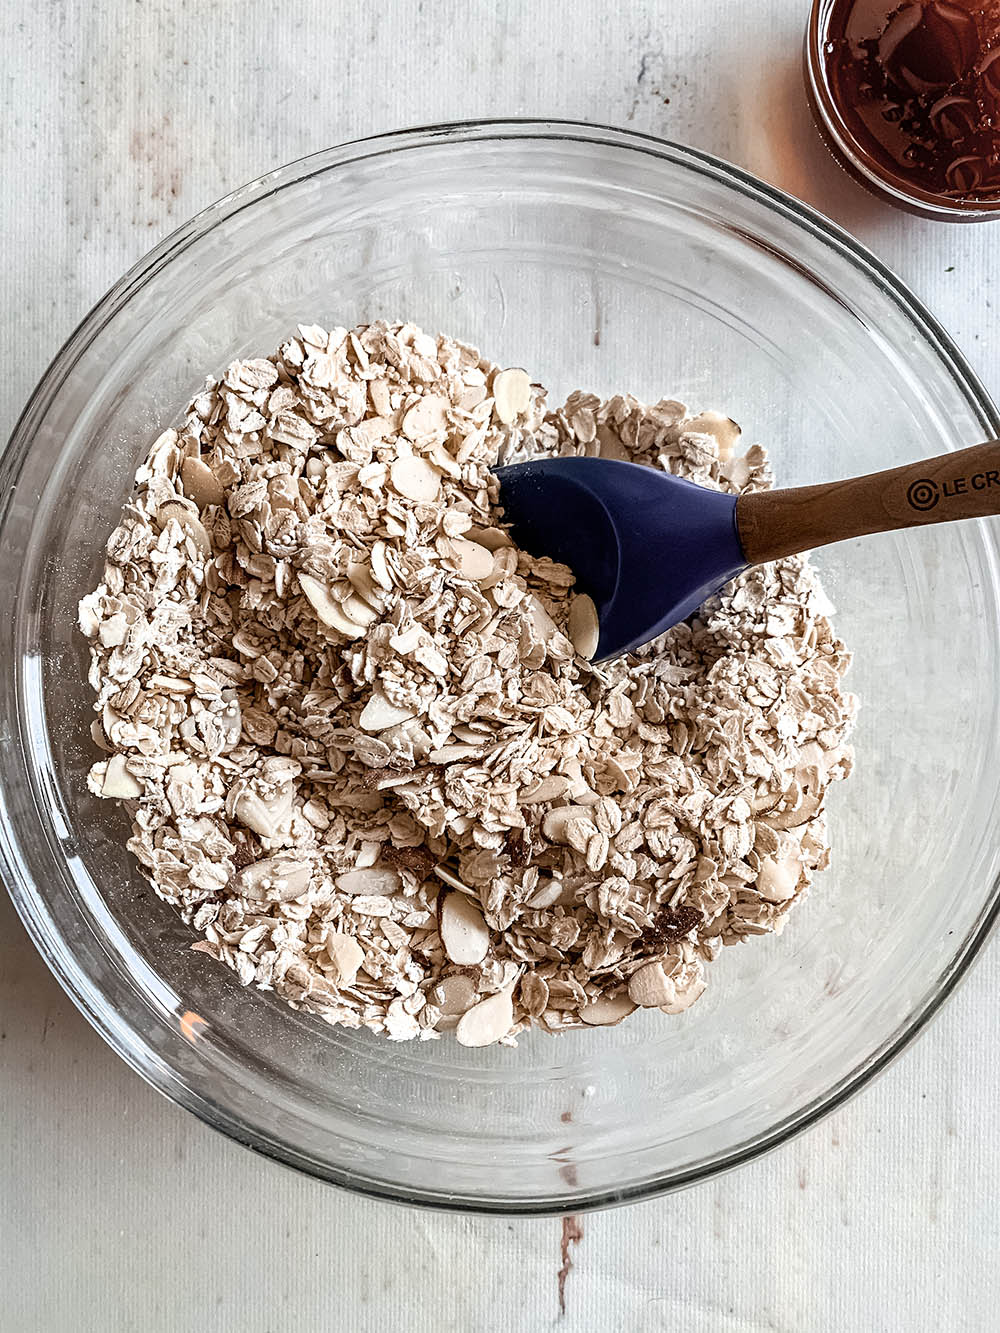 Dry granola ingredients mixed in a glass bowl.